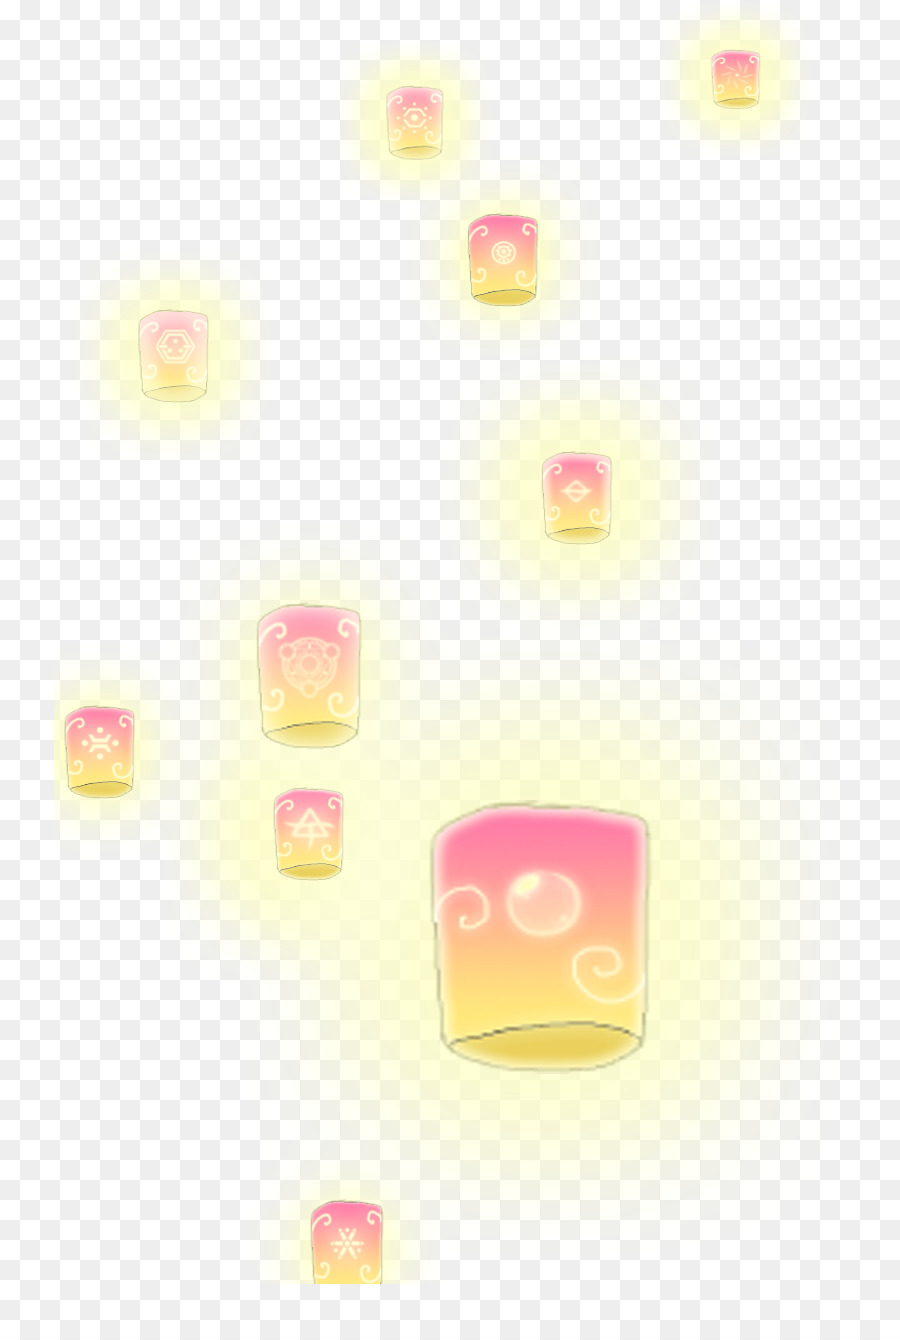 Rapunzel, Light, Lantern, Pink, Computer Wallpaper PNG